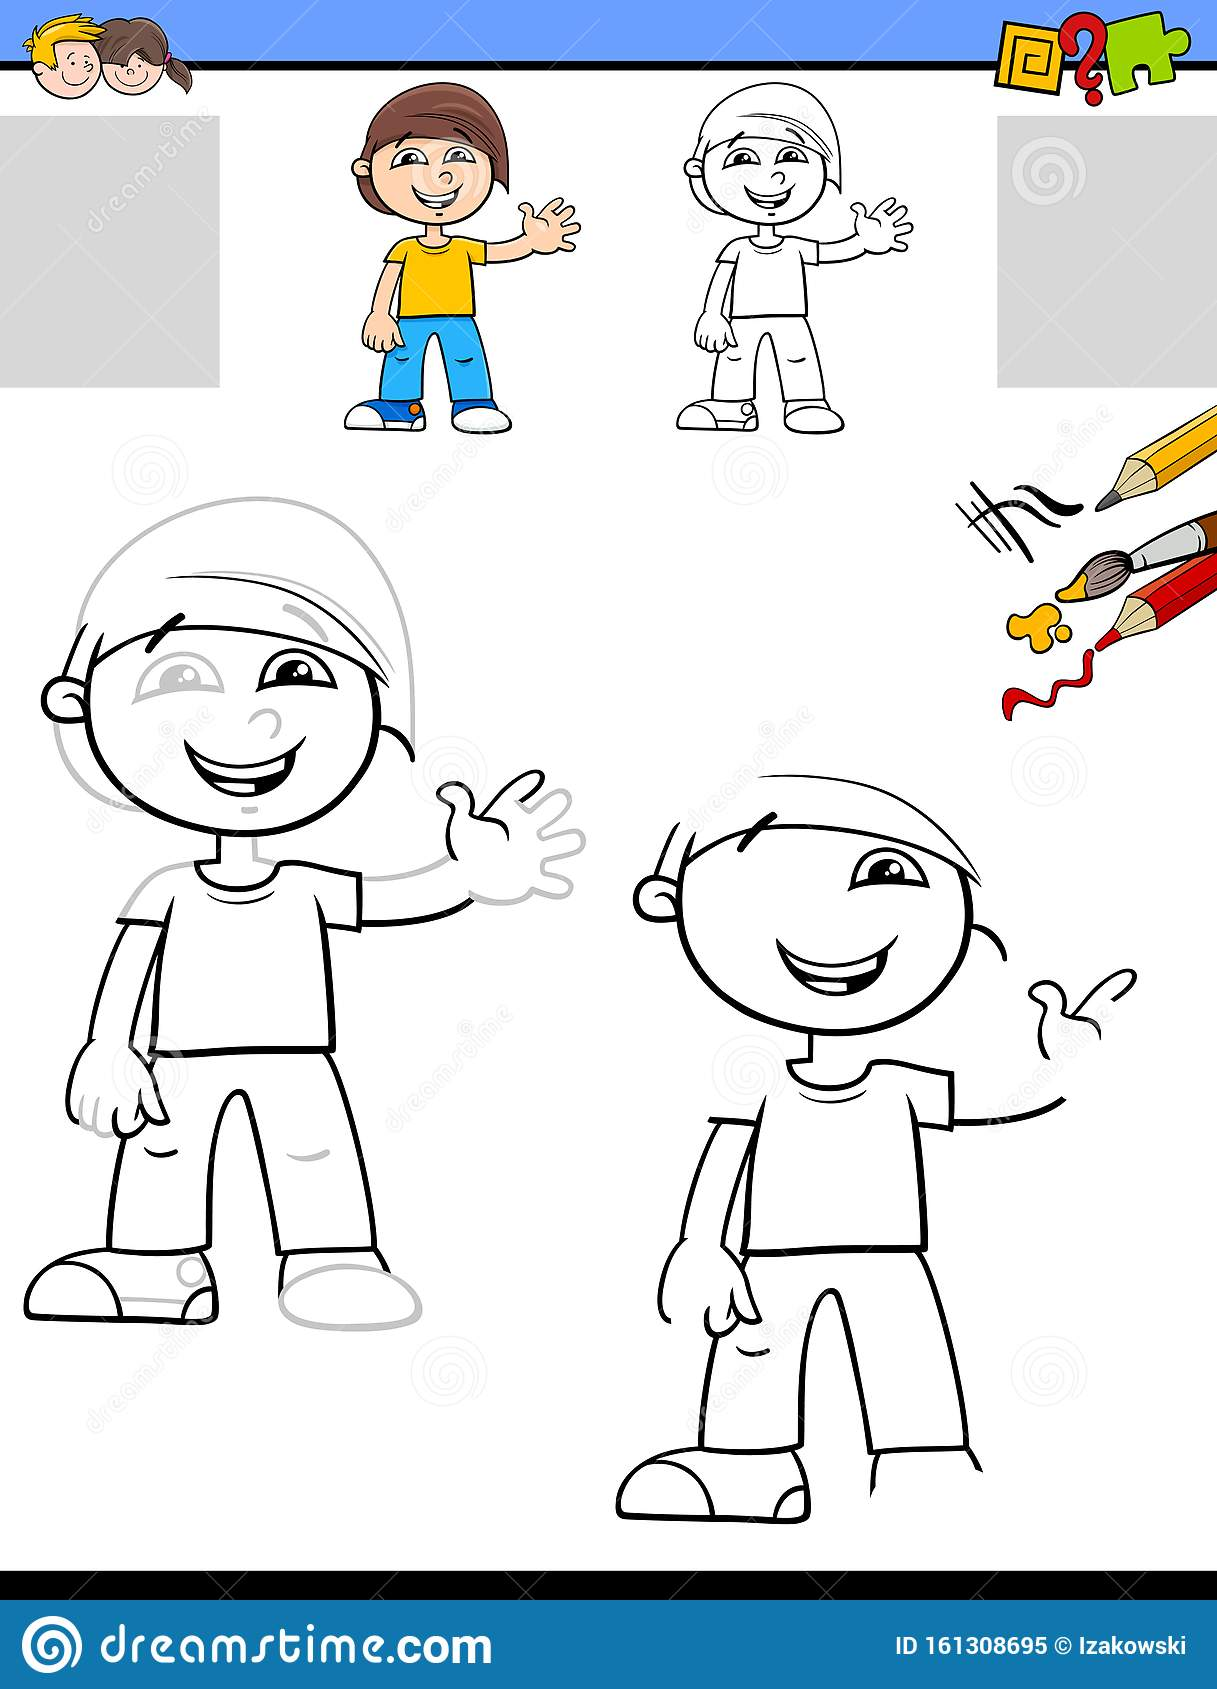 Drawing And Coloring Worksheet With Happy Boy Stock Vector